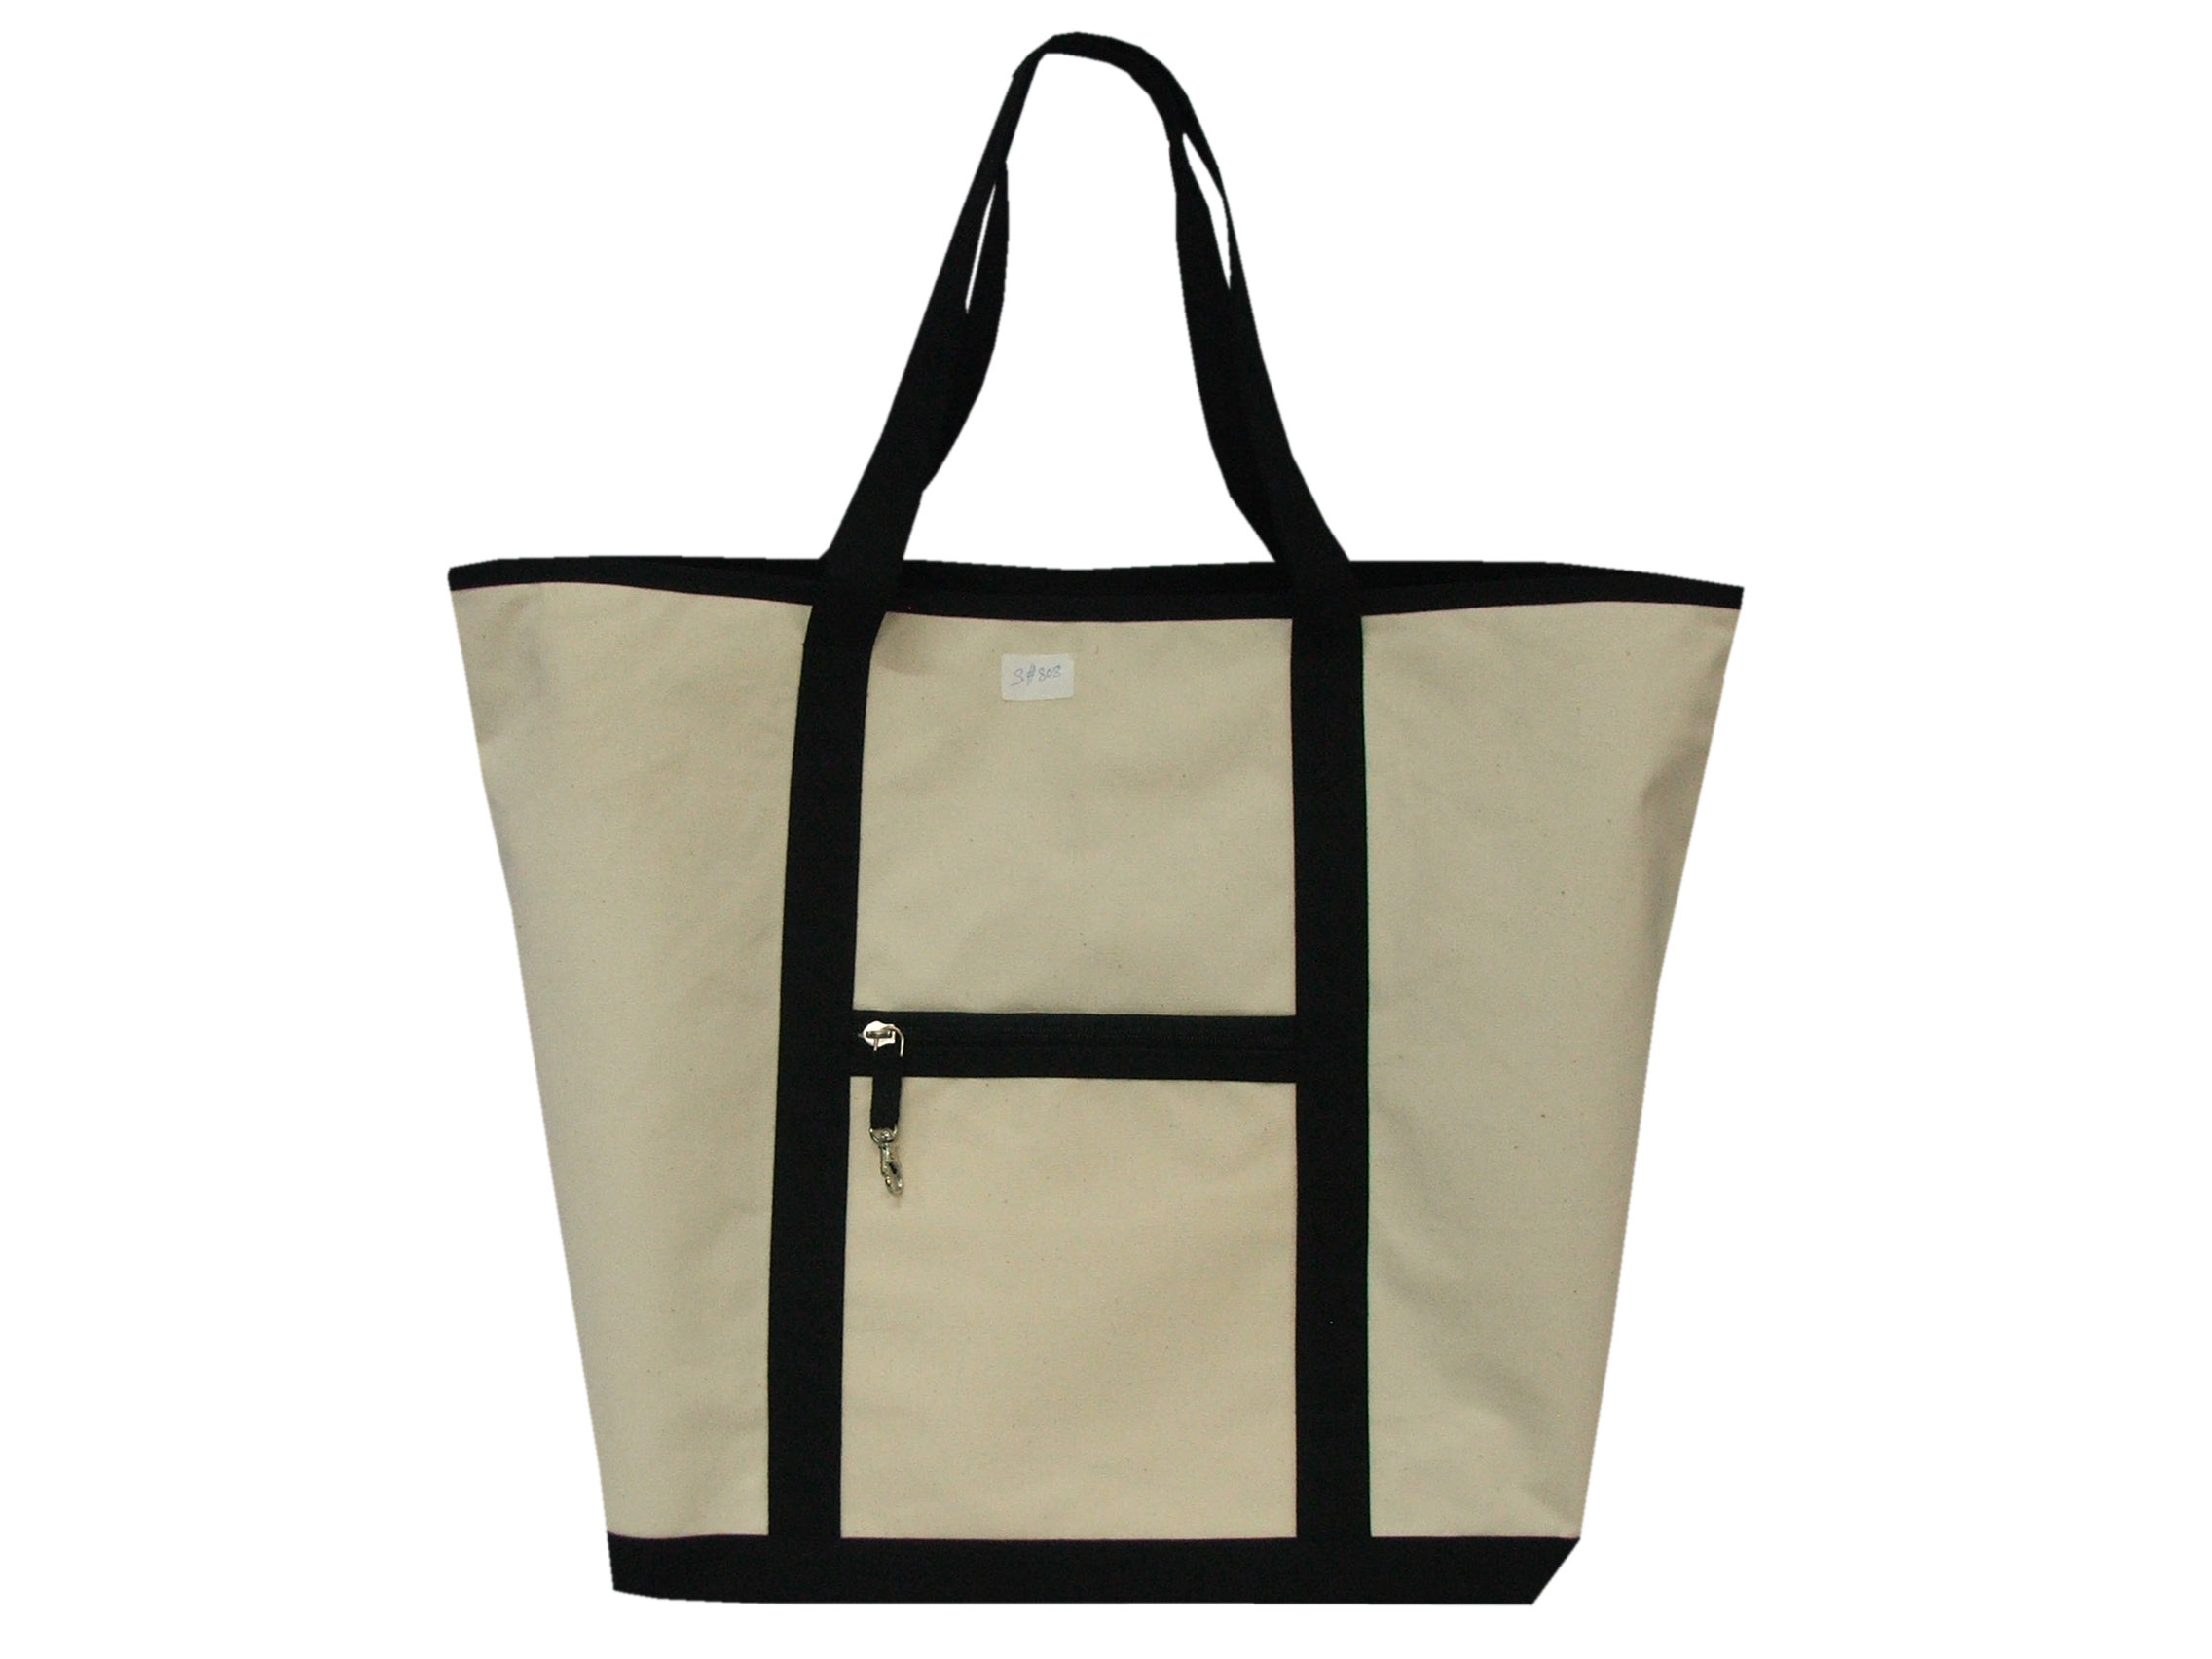 Deluxe Canvas Tote Bag